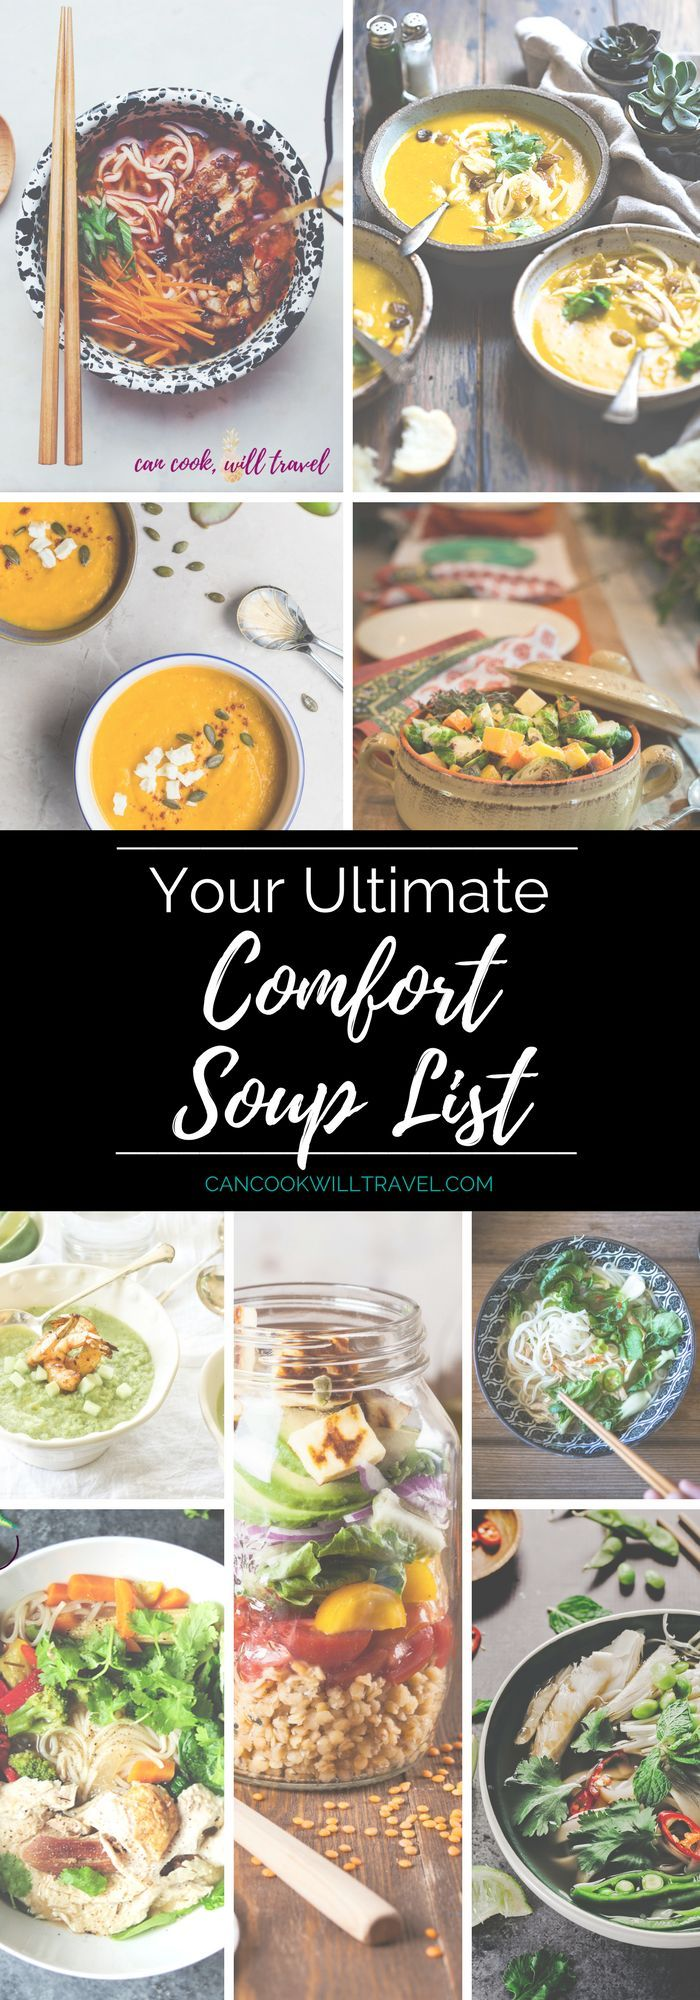 Here's your Ultimate List of Comfort Soups, where you'll find something for everyone. From healthy to indulgent to Asian-inspired to whatever your meat or veggie preferences are...there are SO many yummy recipes here.